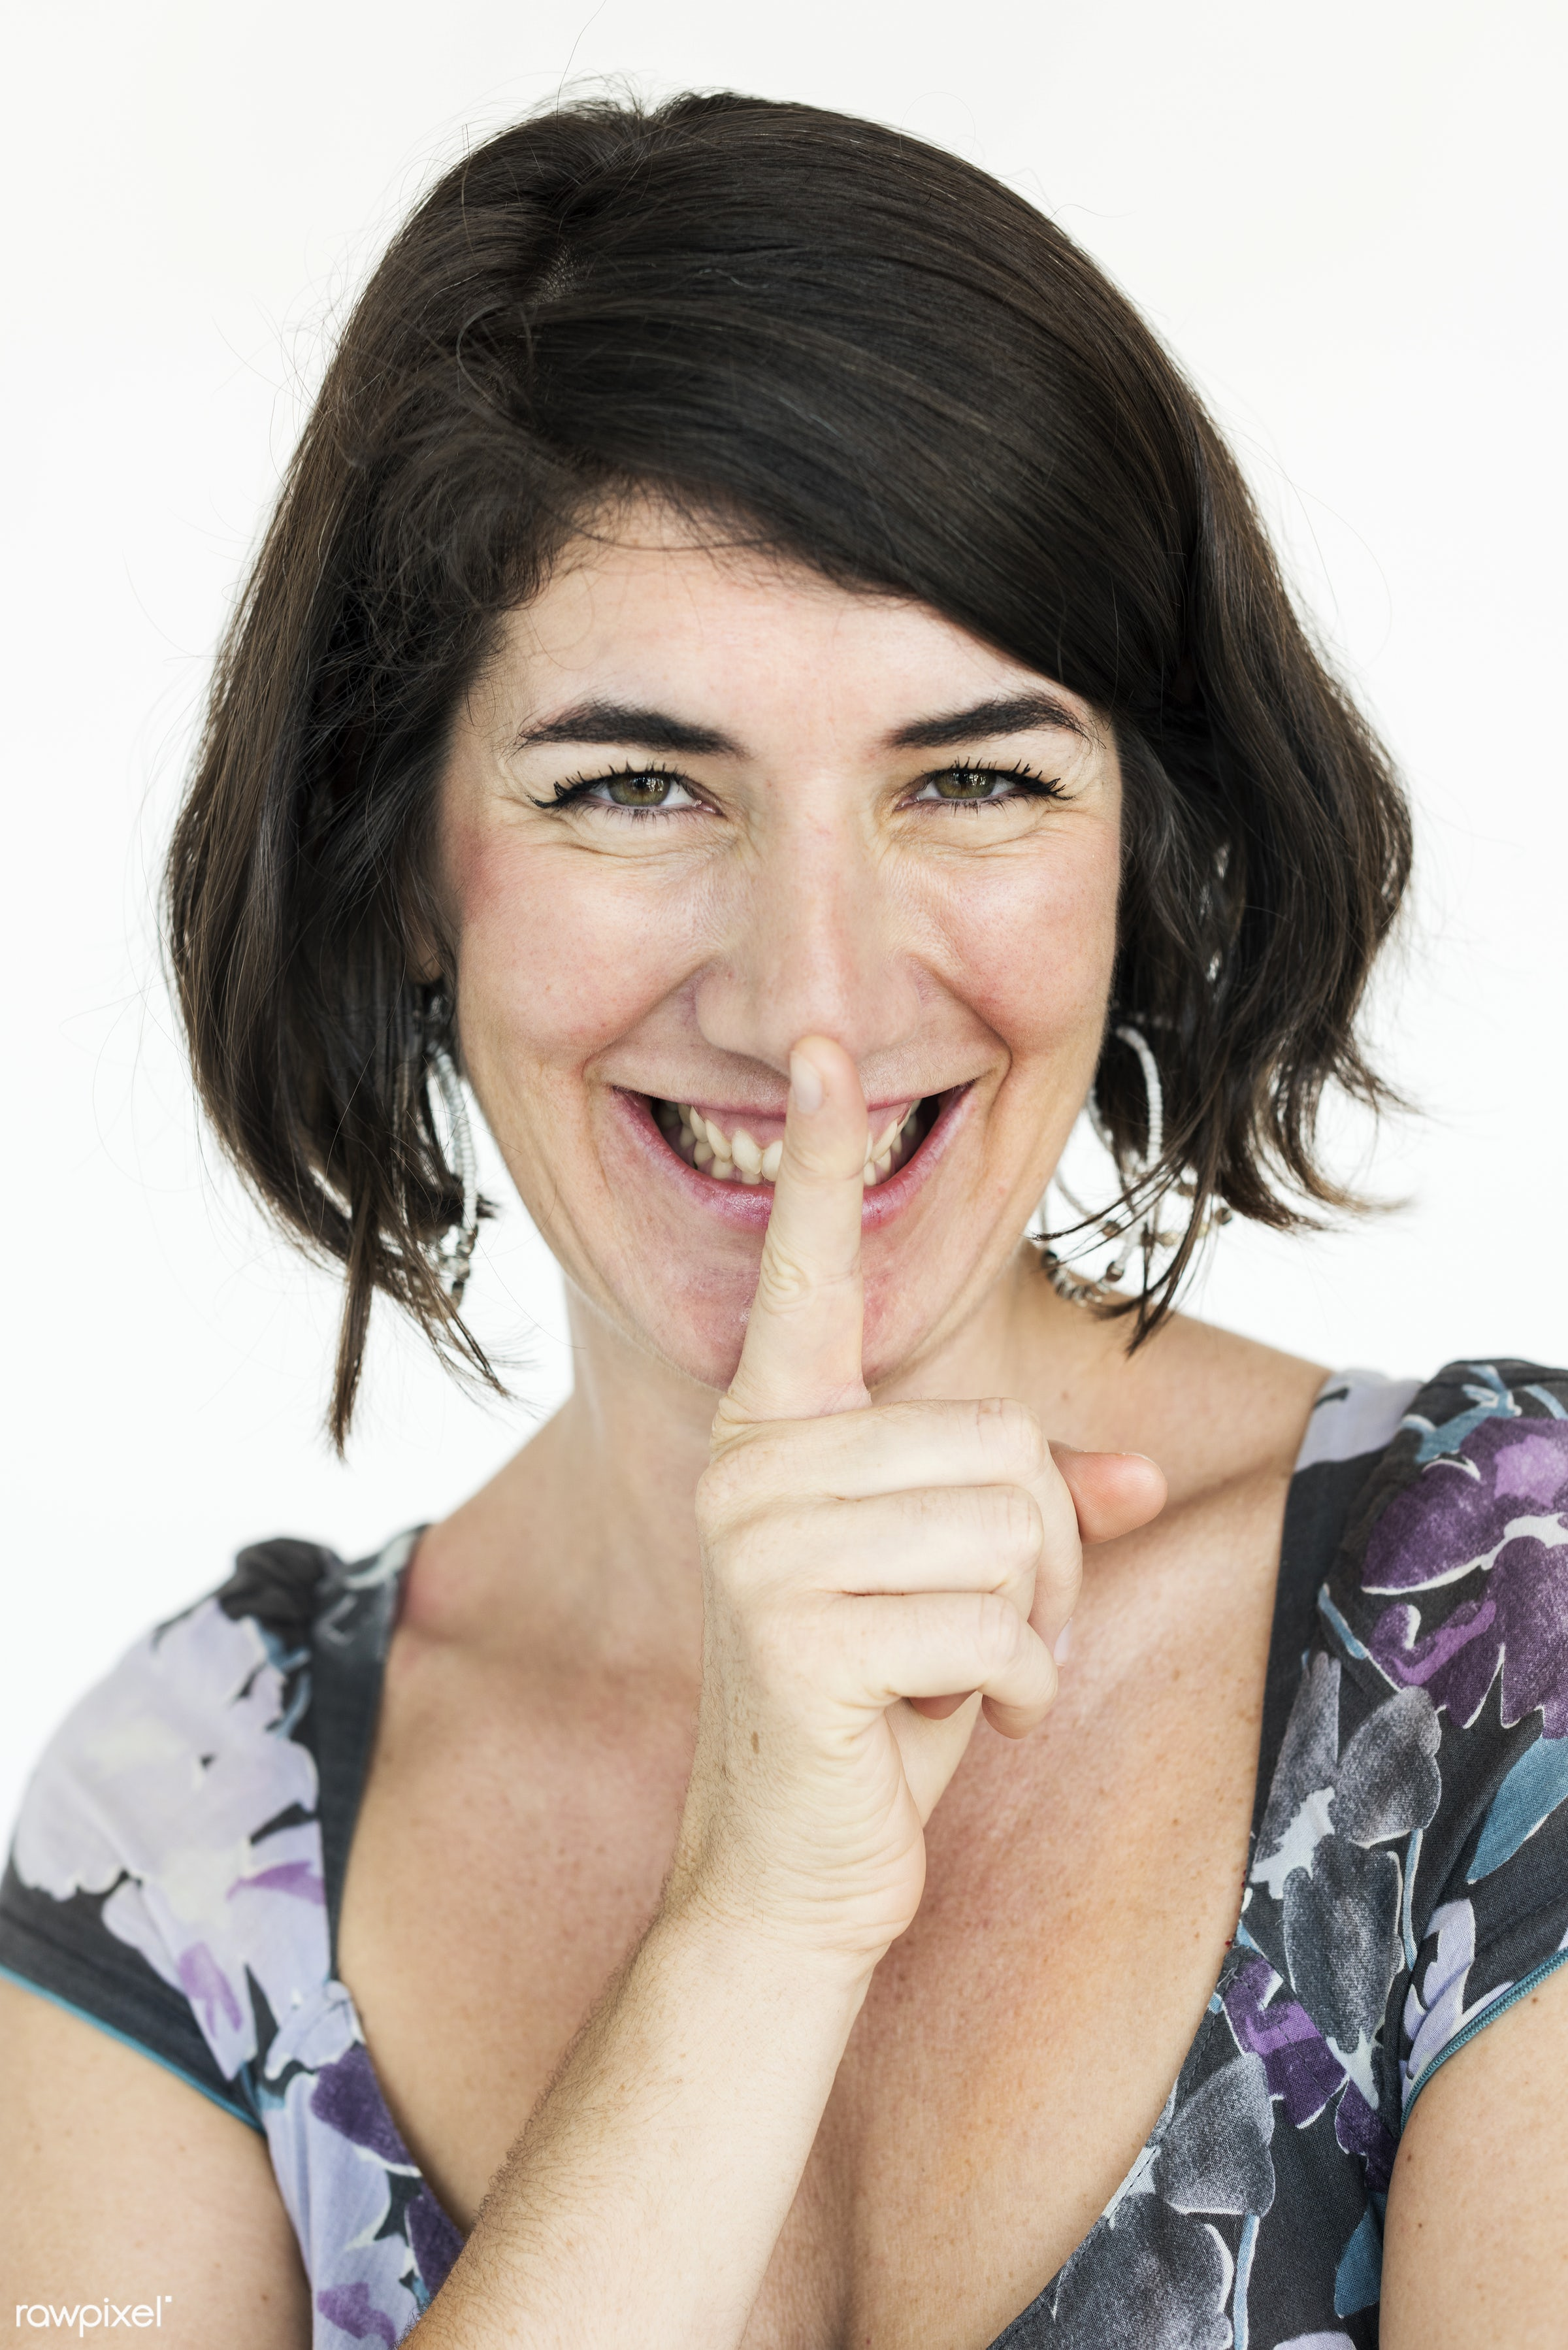 studio, expression, person, people, finger on lips, woman, shh, smile, cheerful, smiling, isolated, white, happiness, quiet...